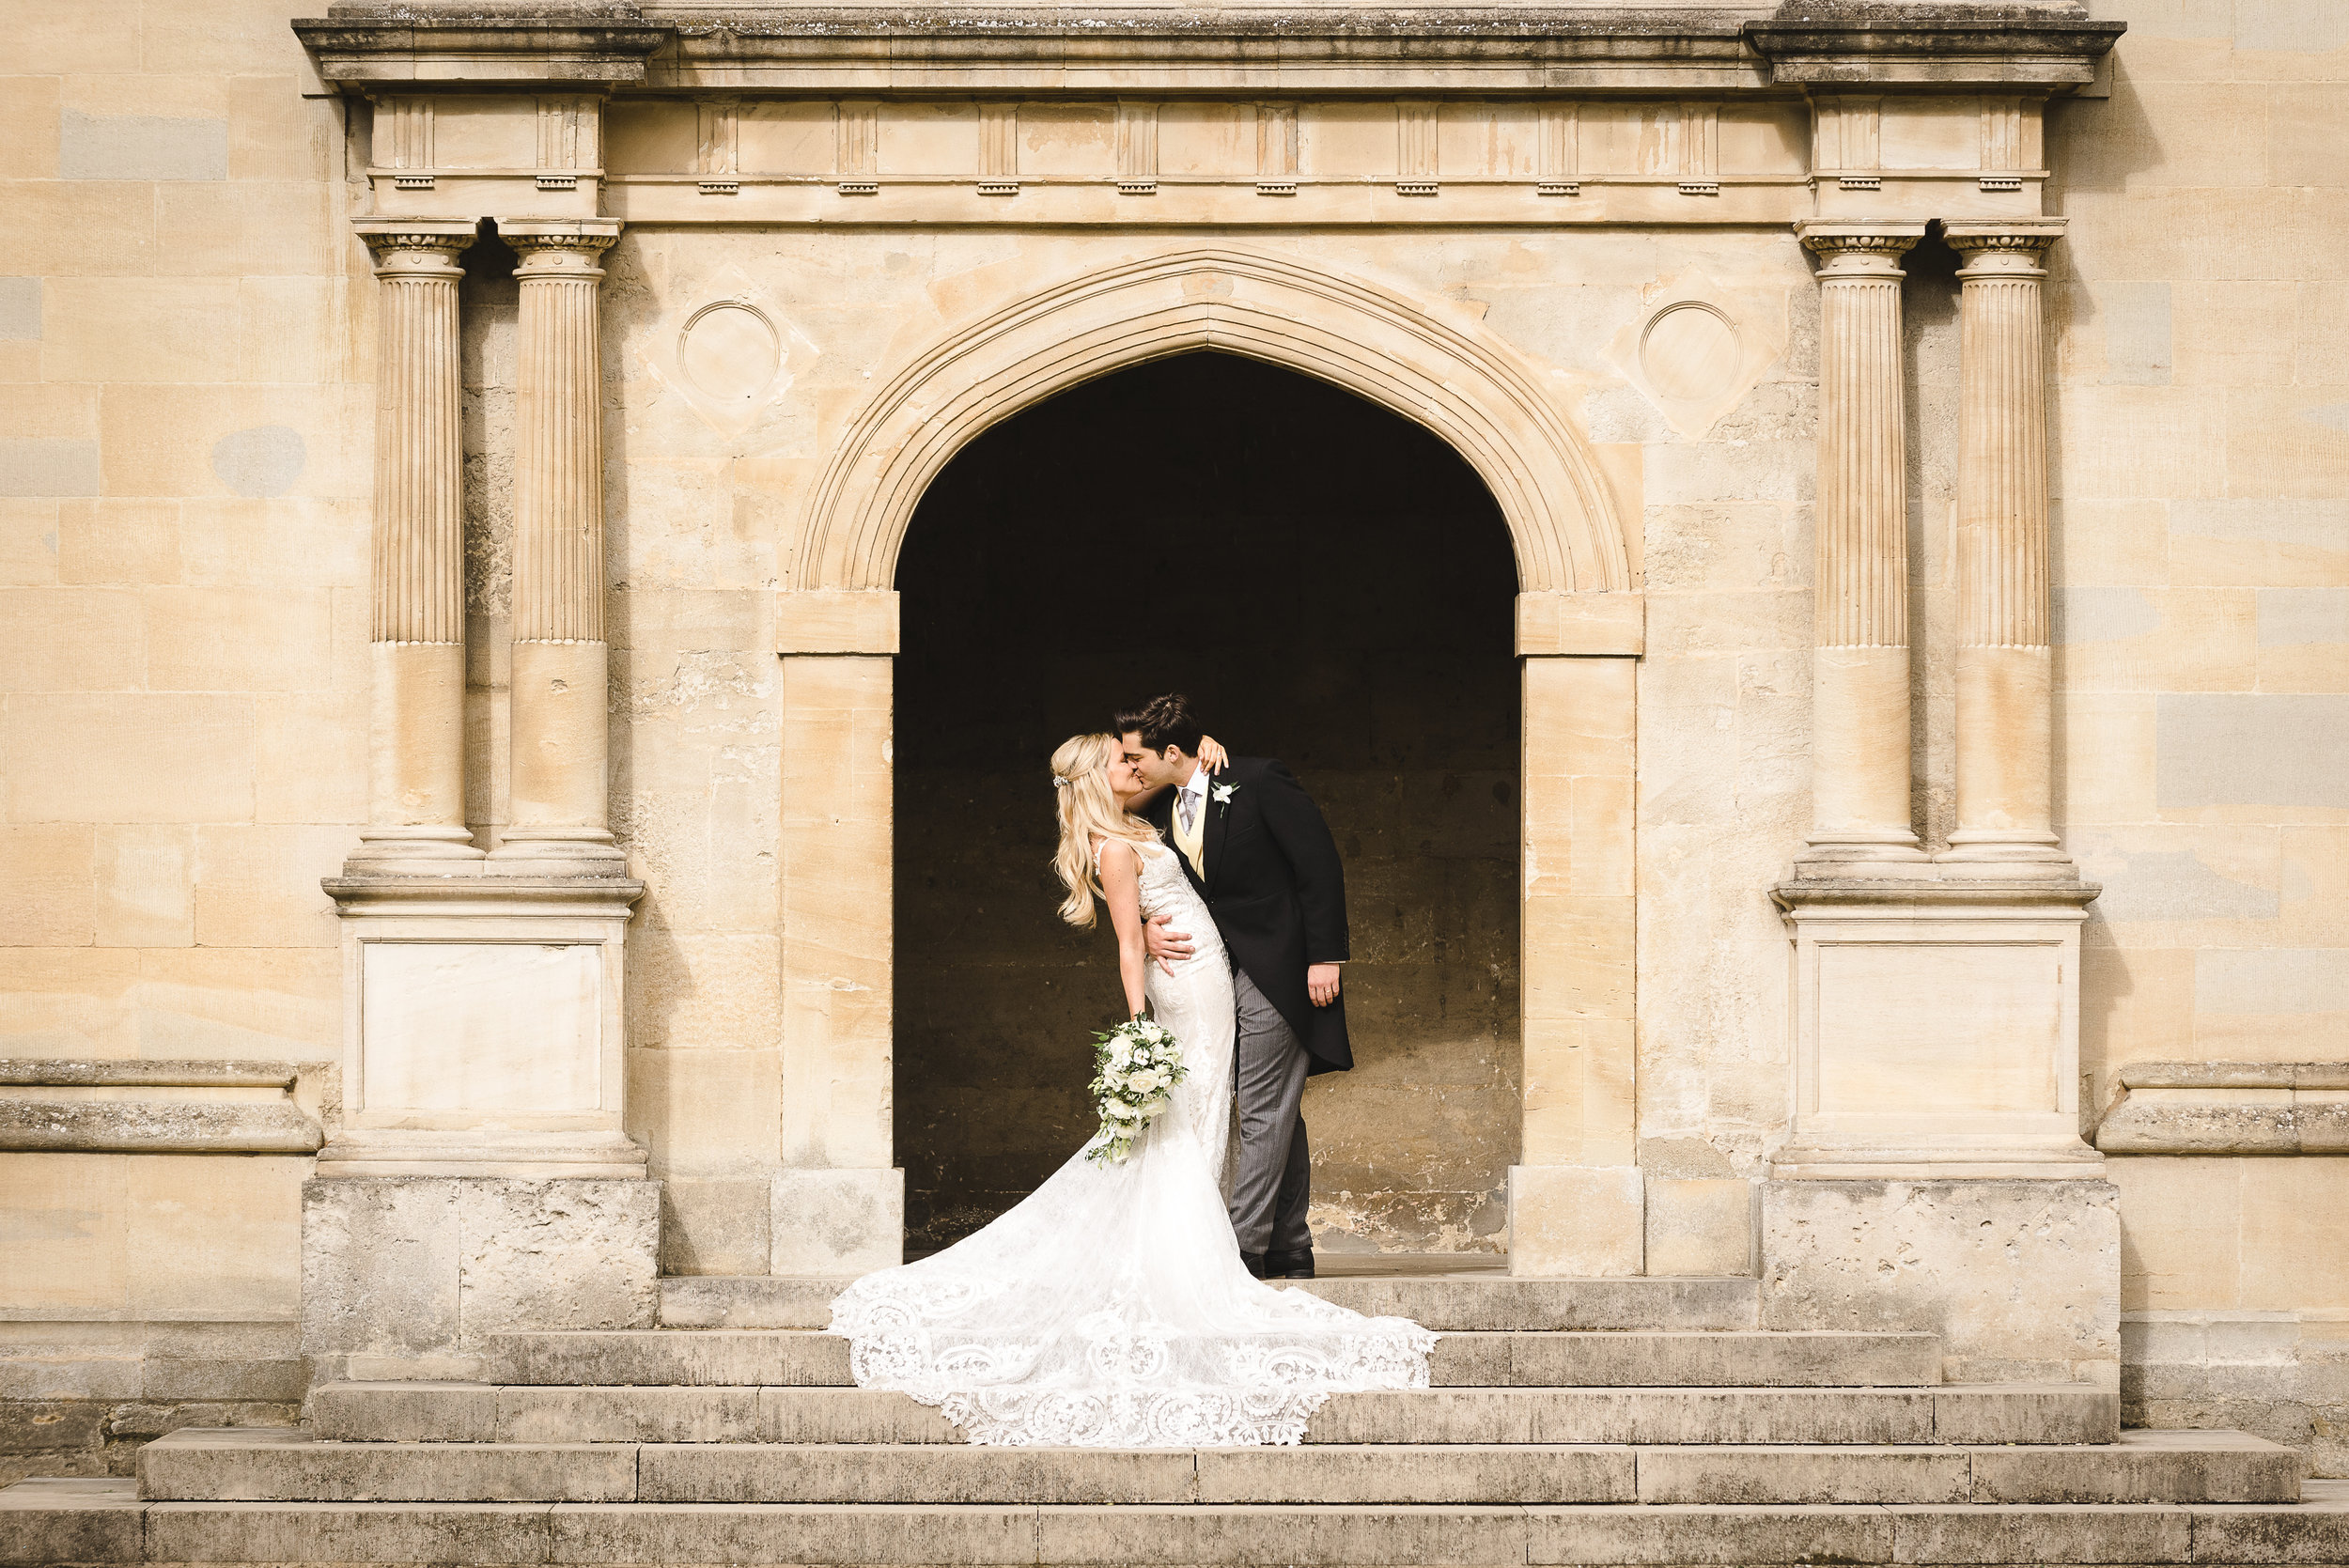 Oxford wedding by Weddings by Nicola and Glen Photography